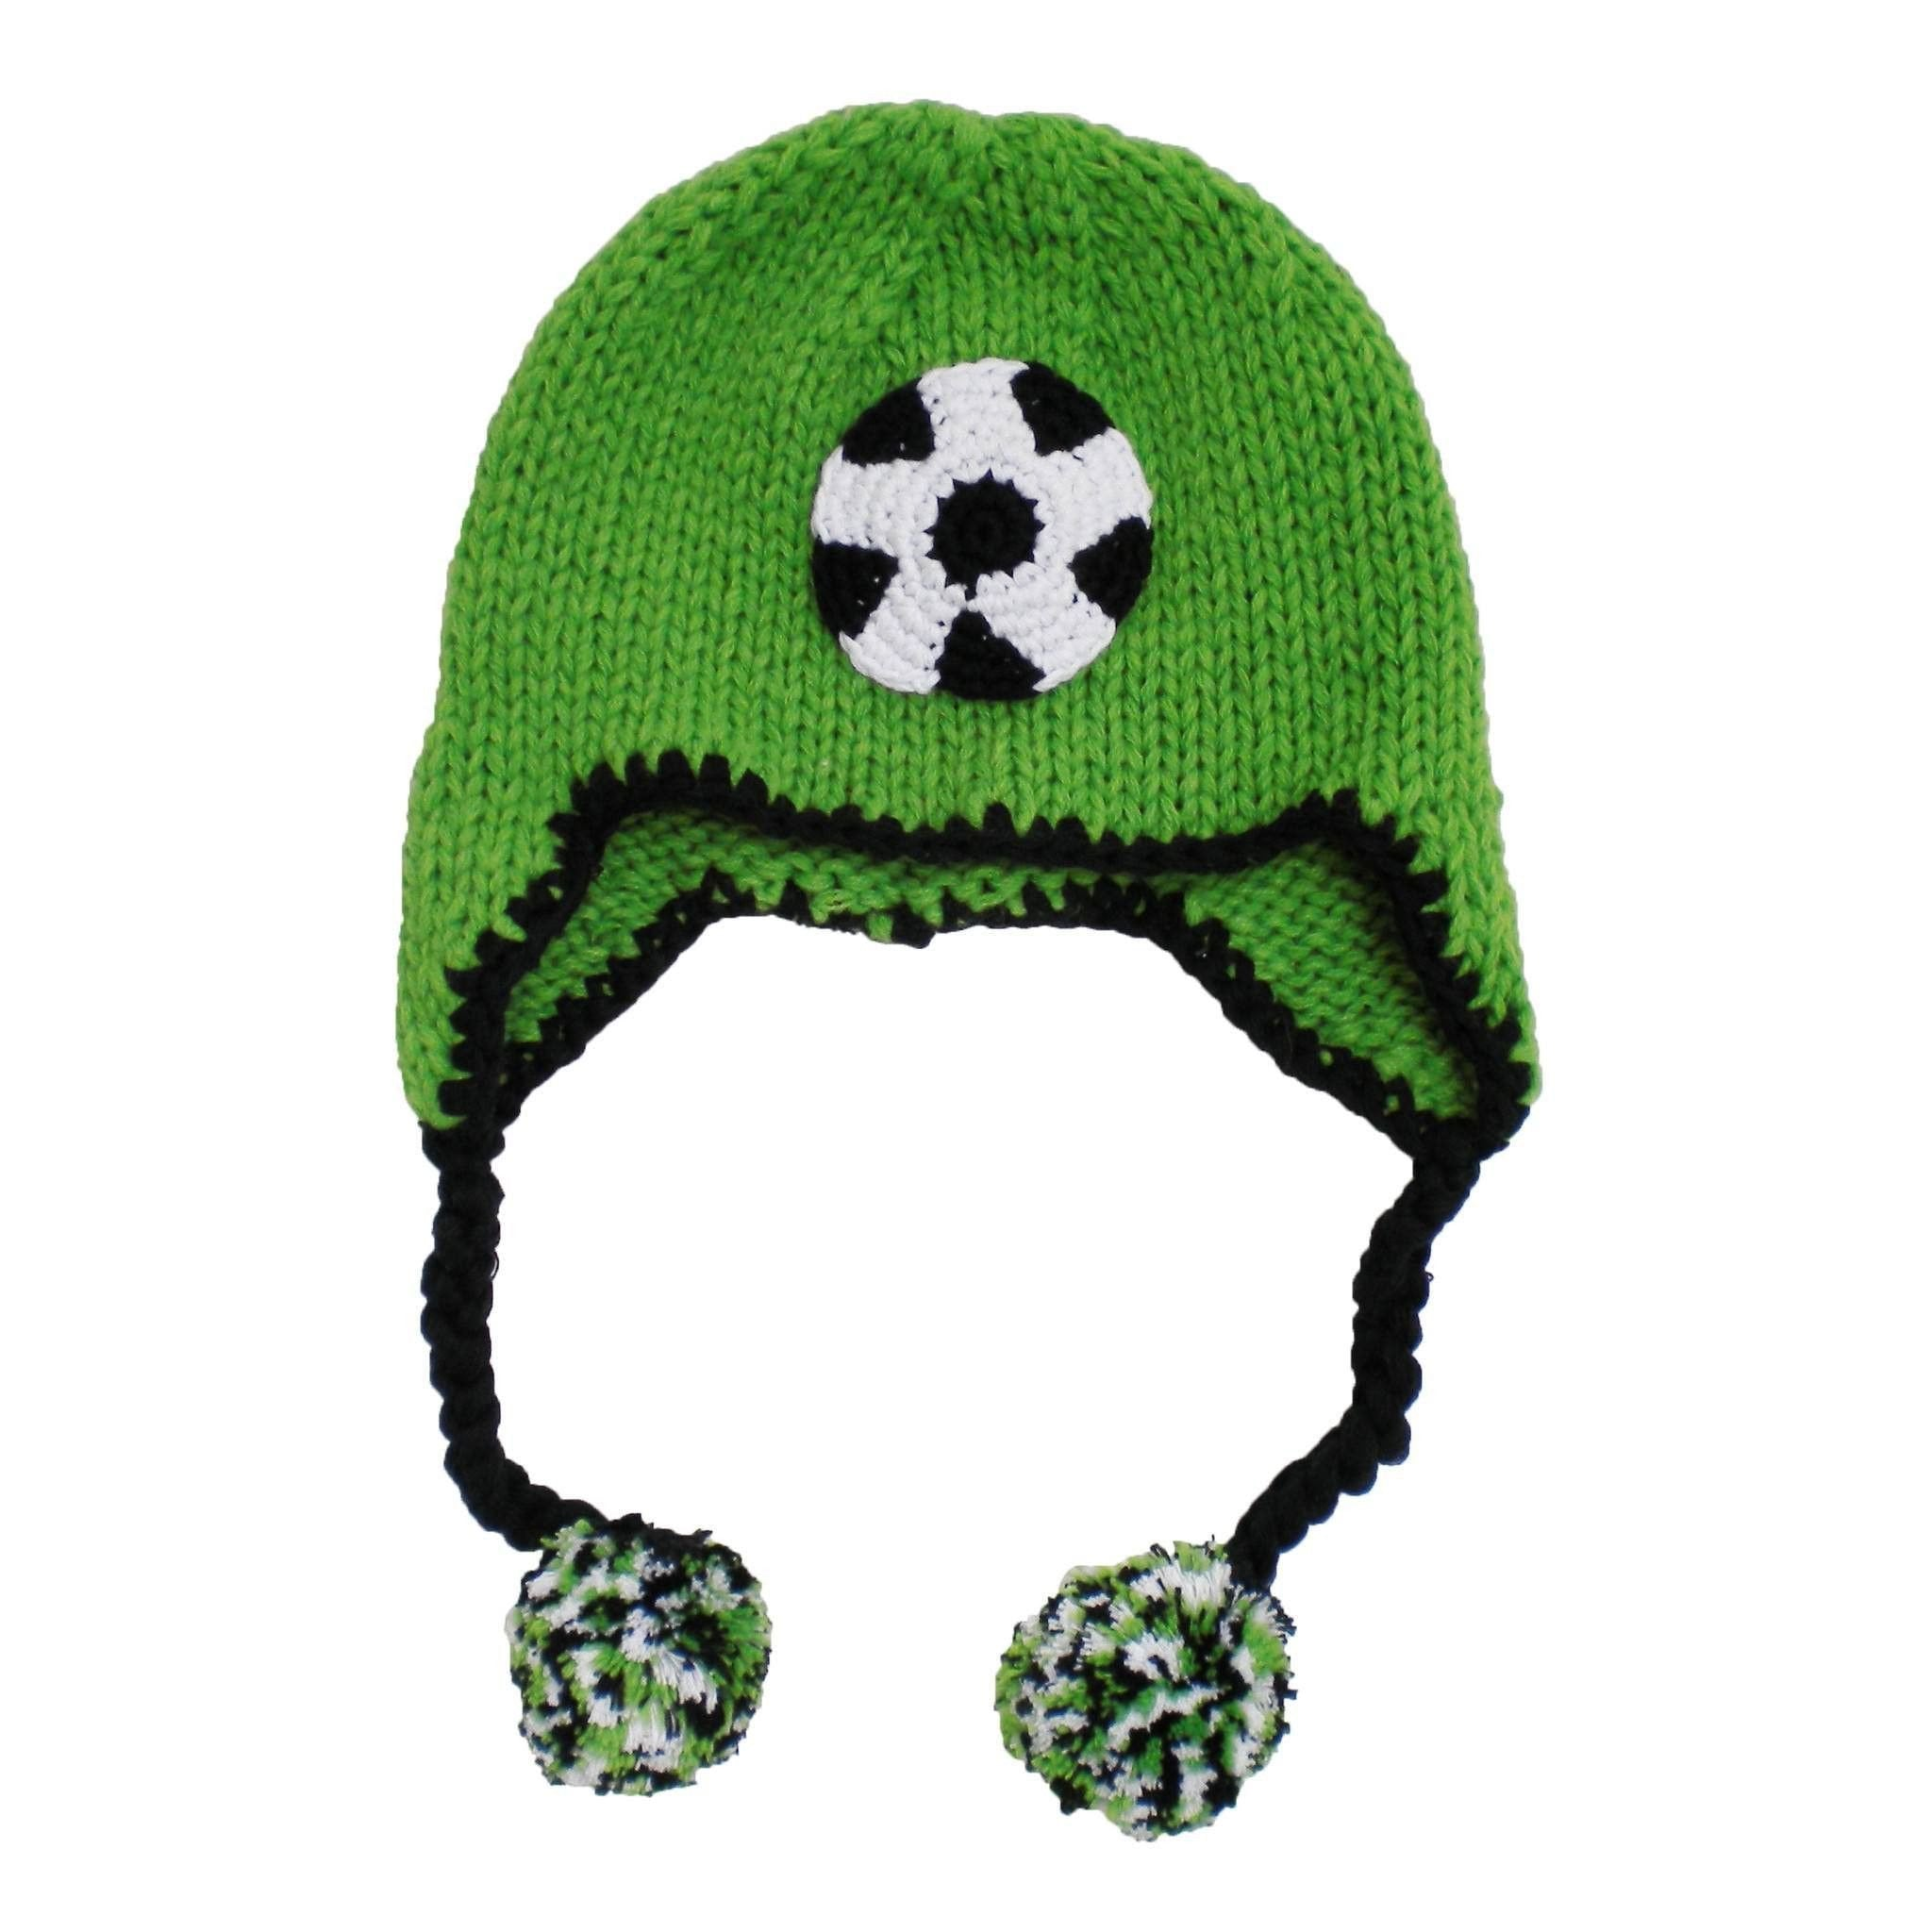 f7872602febbc0 Soccer Beanie Hat   Cotton Beanies for Babies   Huggalugs